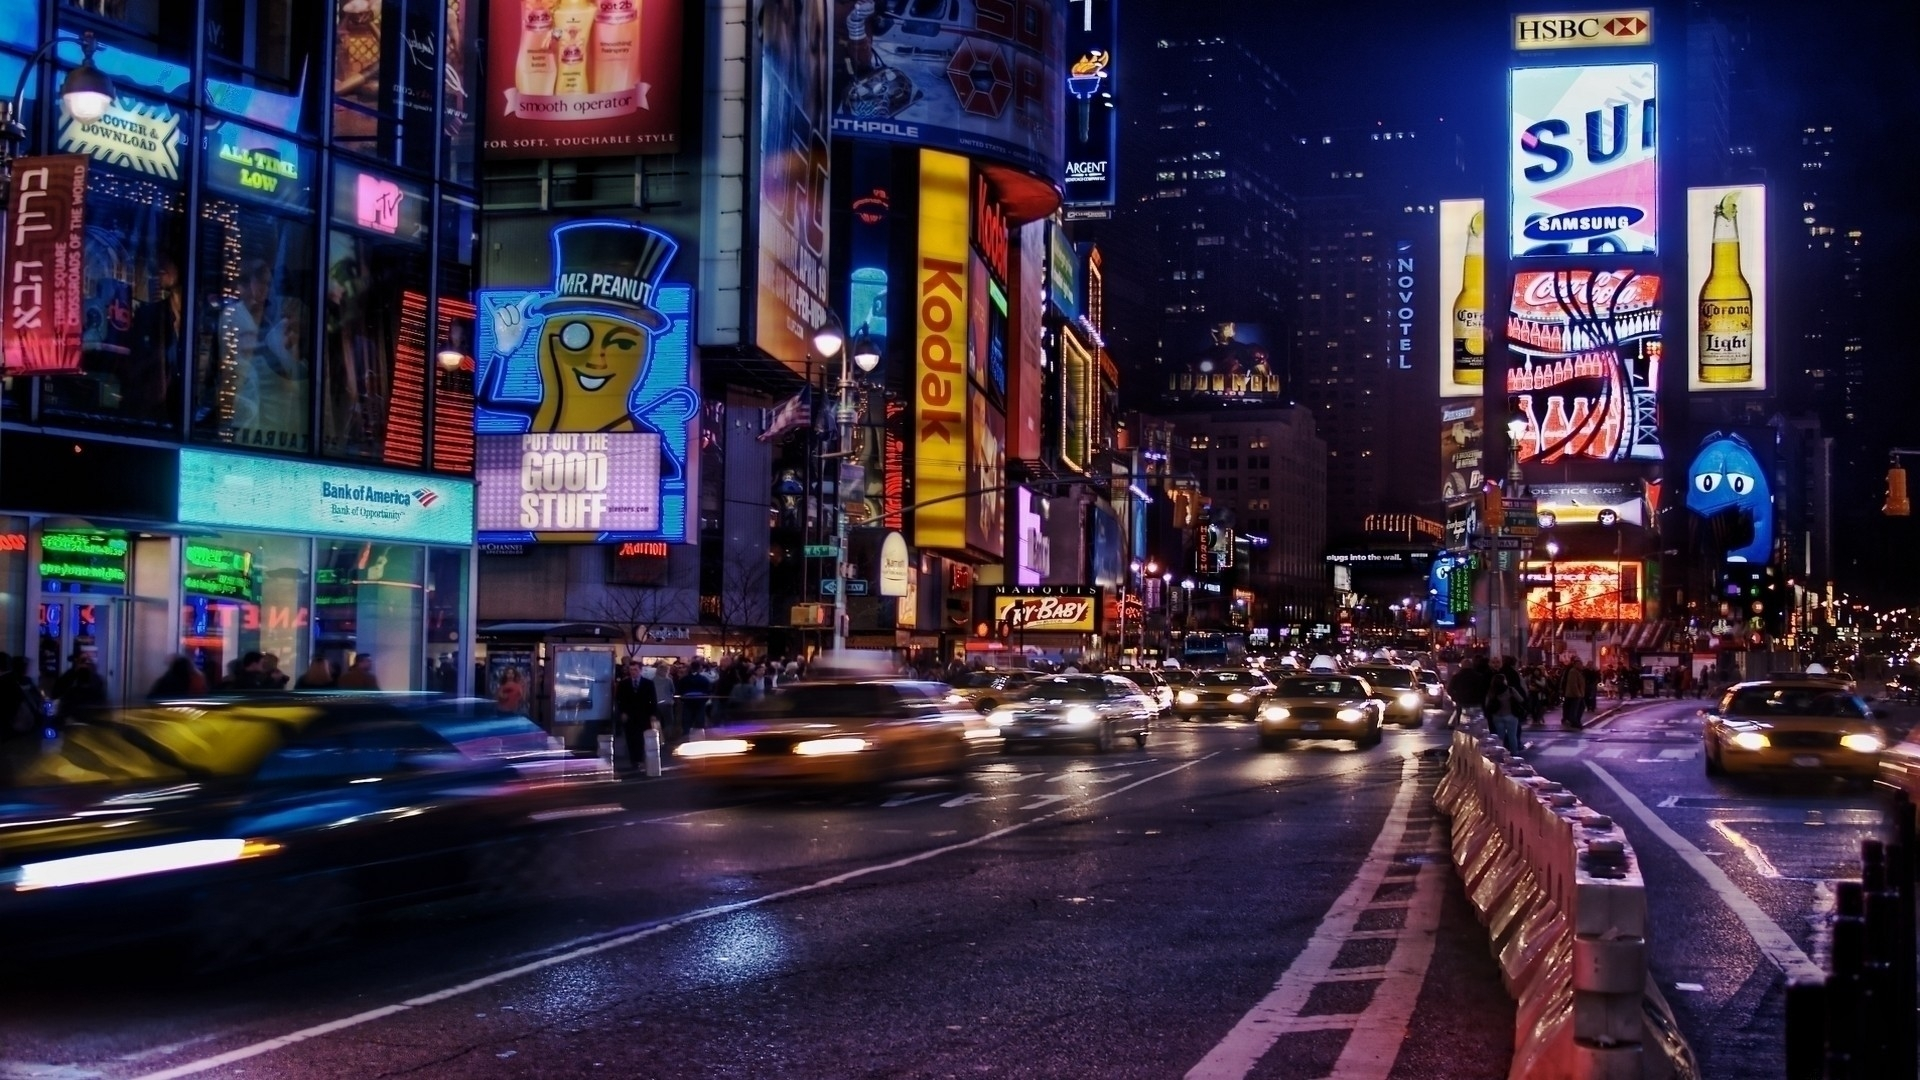 10 Top And Most Current Night City Street Wallpaper For Desktop With FULL HD 1080p 1920 X 1080 FREE DOWNLOAD